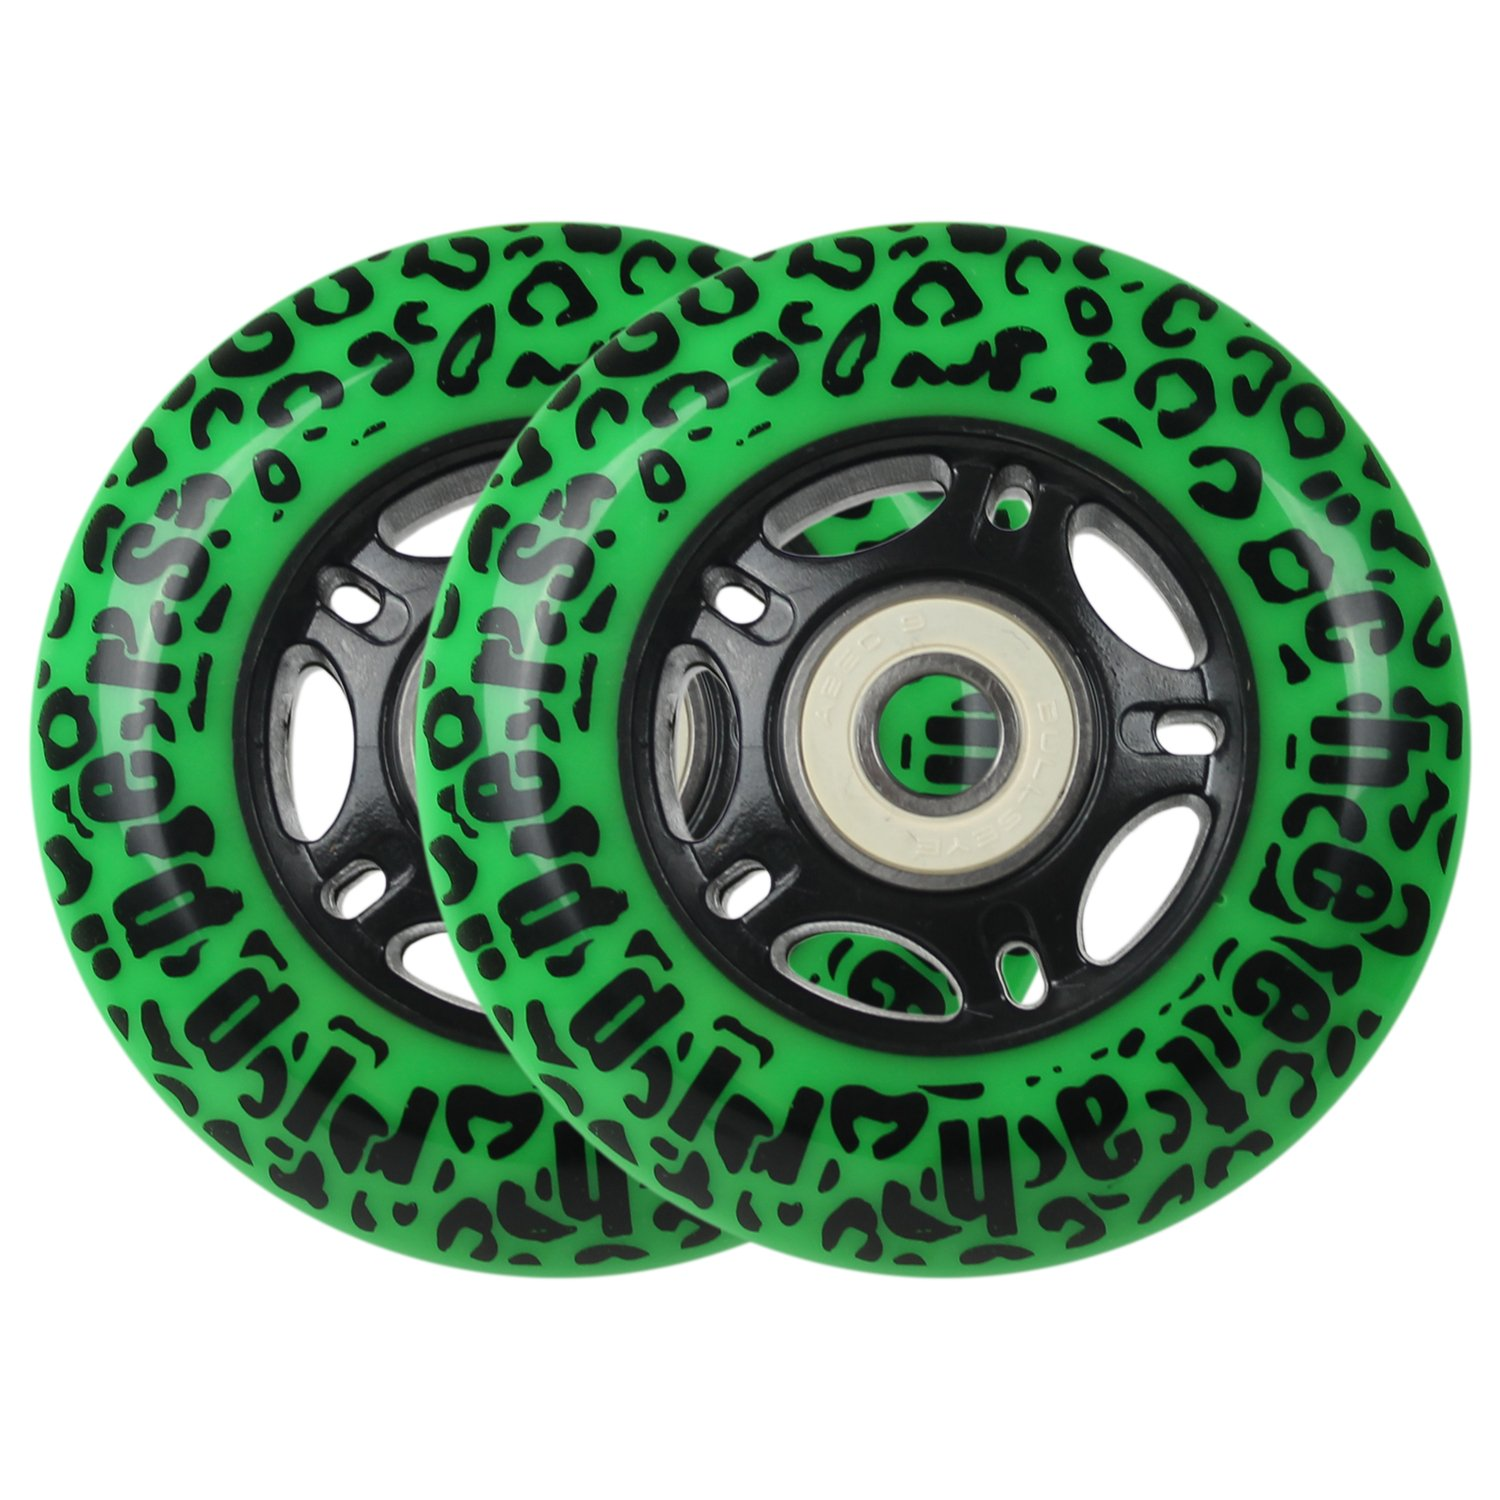 GREEN CHEETAH Wheels for RIPSTICK ripstik wave board ABEC 9 76MM 89A OUTDOOR by Cheetah Rippers